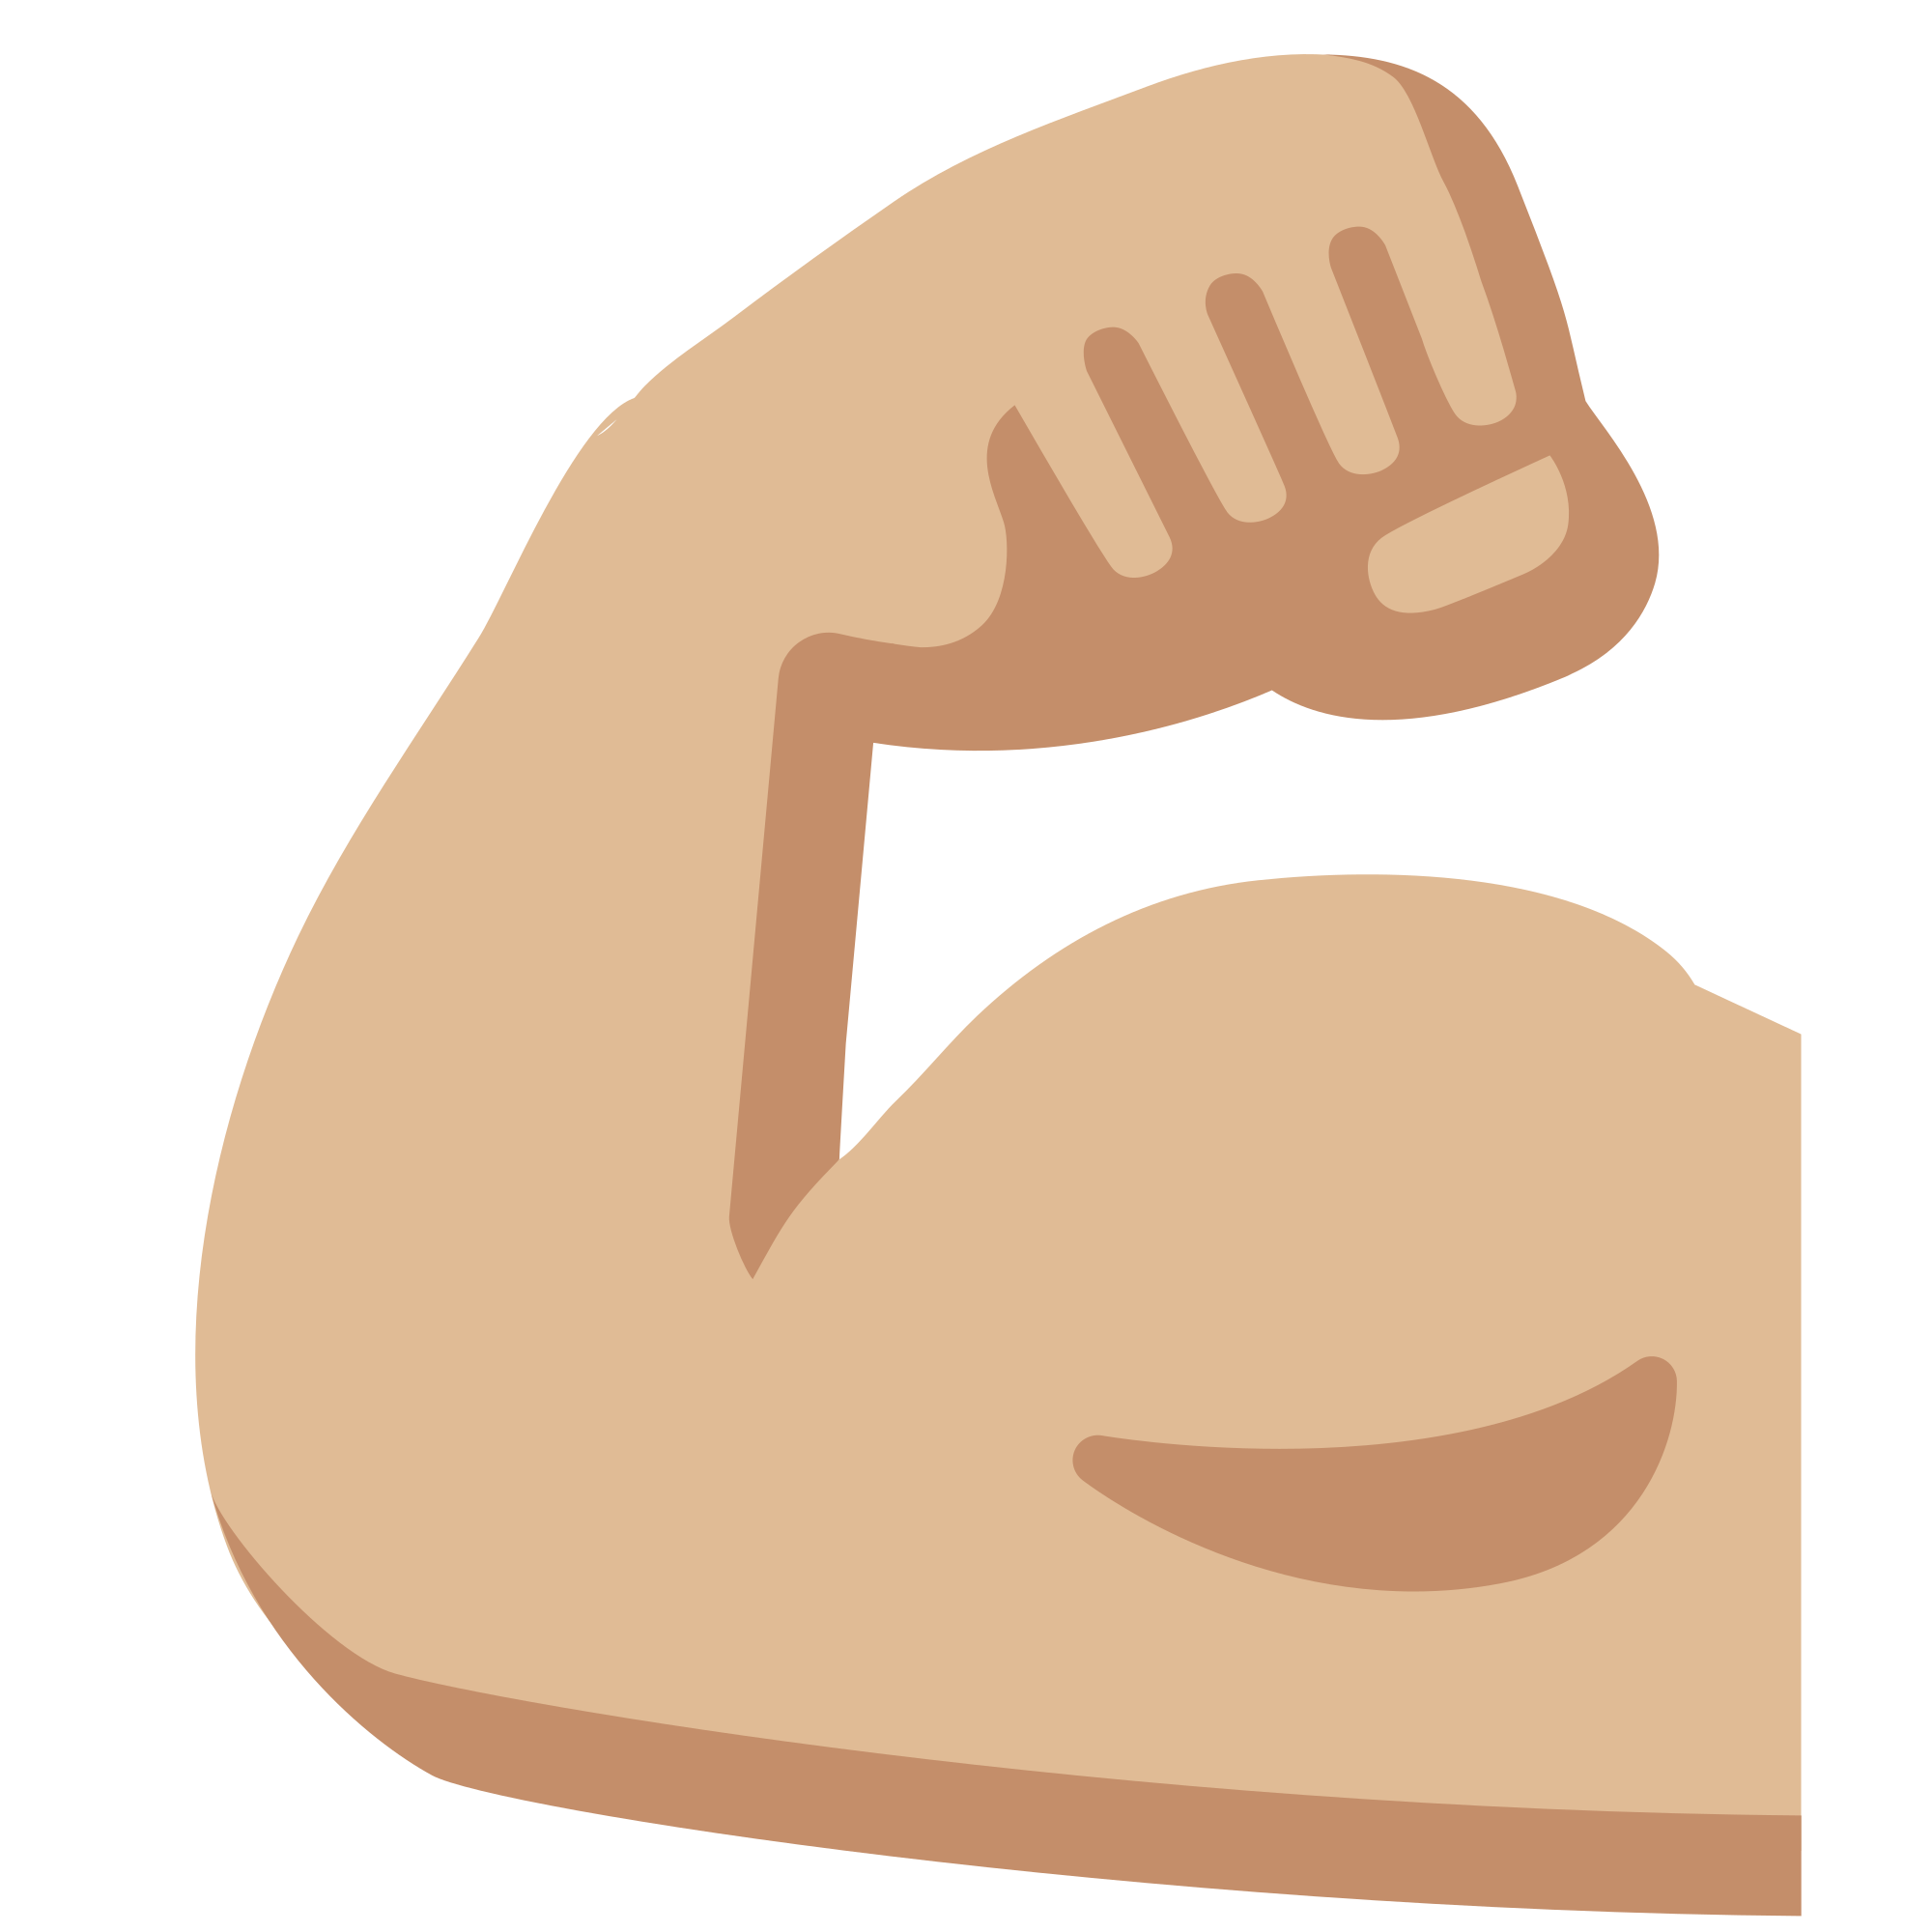 png freeuse Arm clipart muscular power. Muscle png .